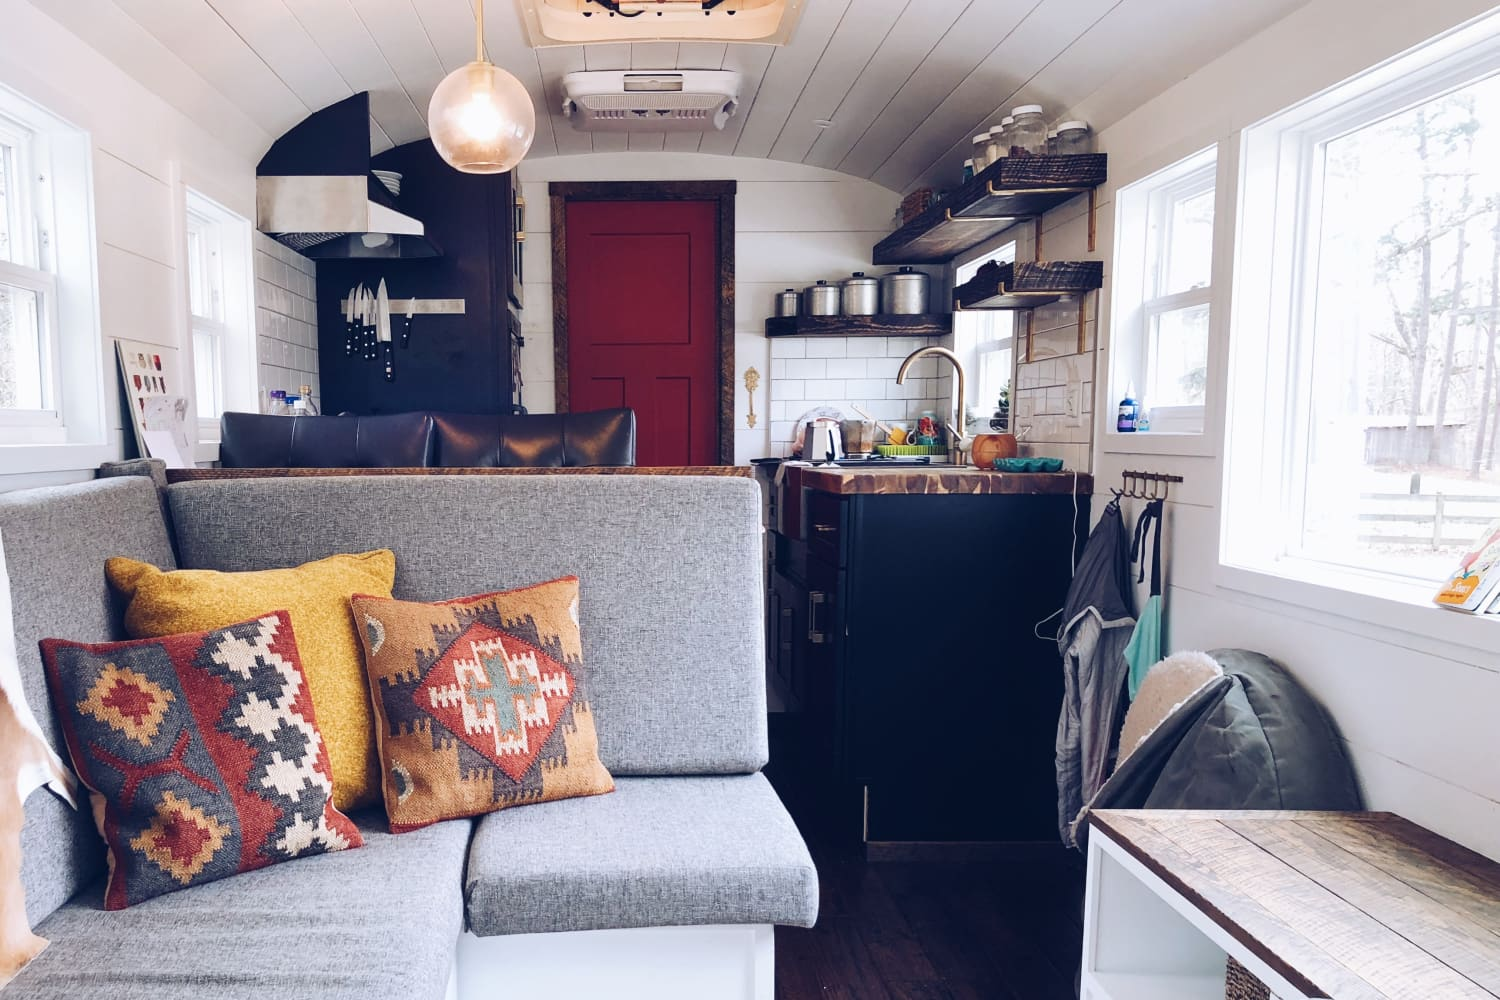 This Old School Bus Was Given a New Life as a Tiny House on Wheels